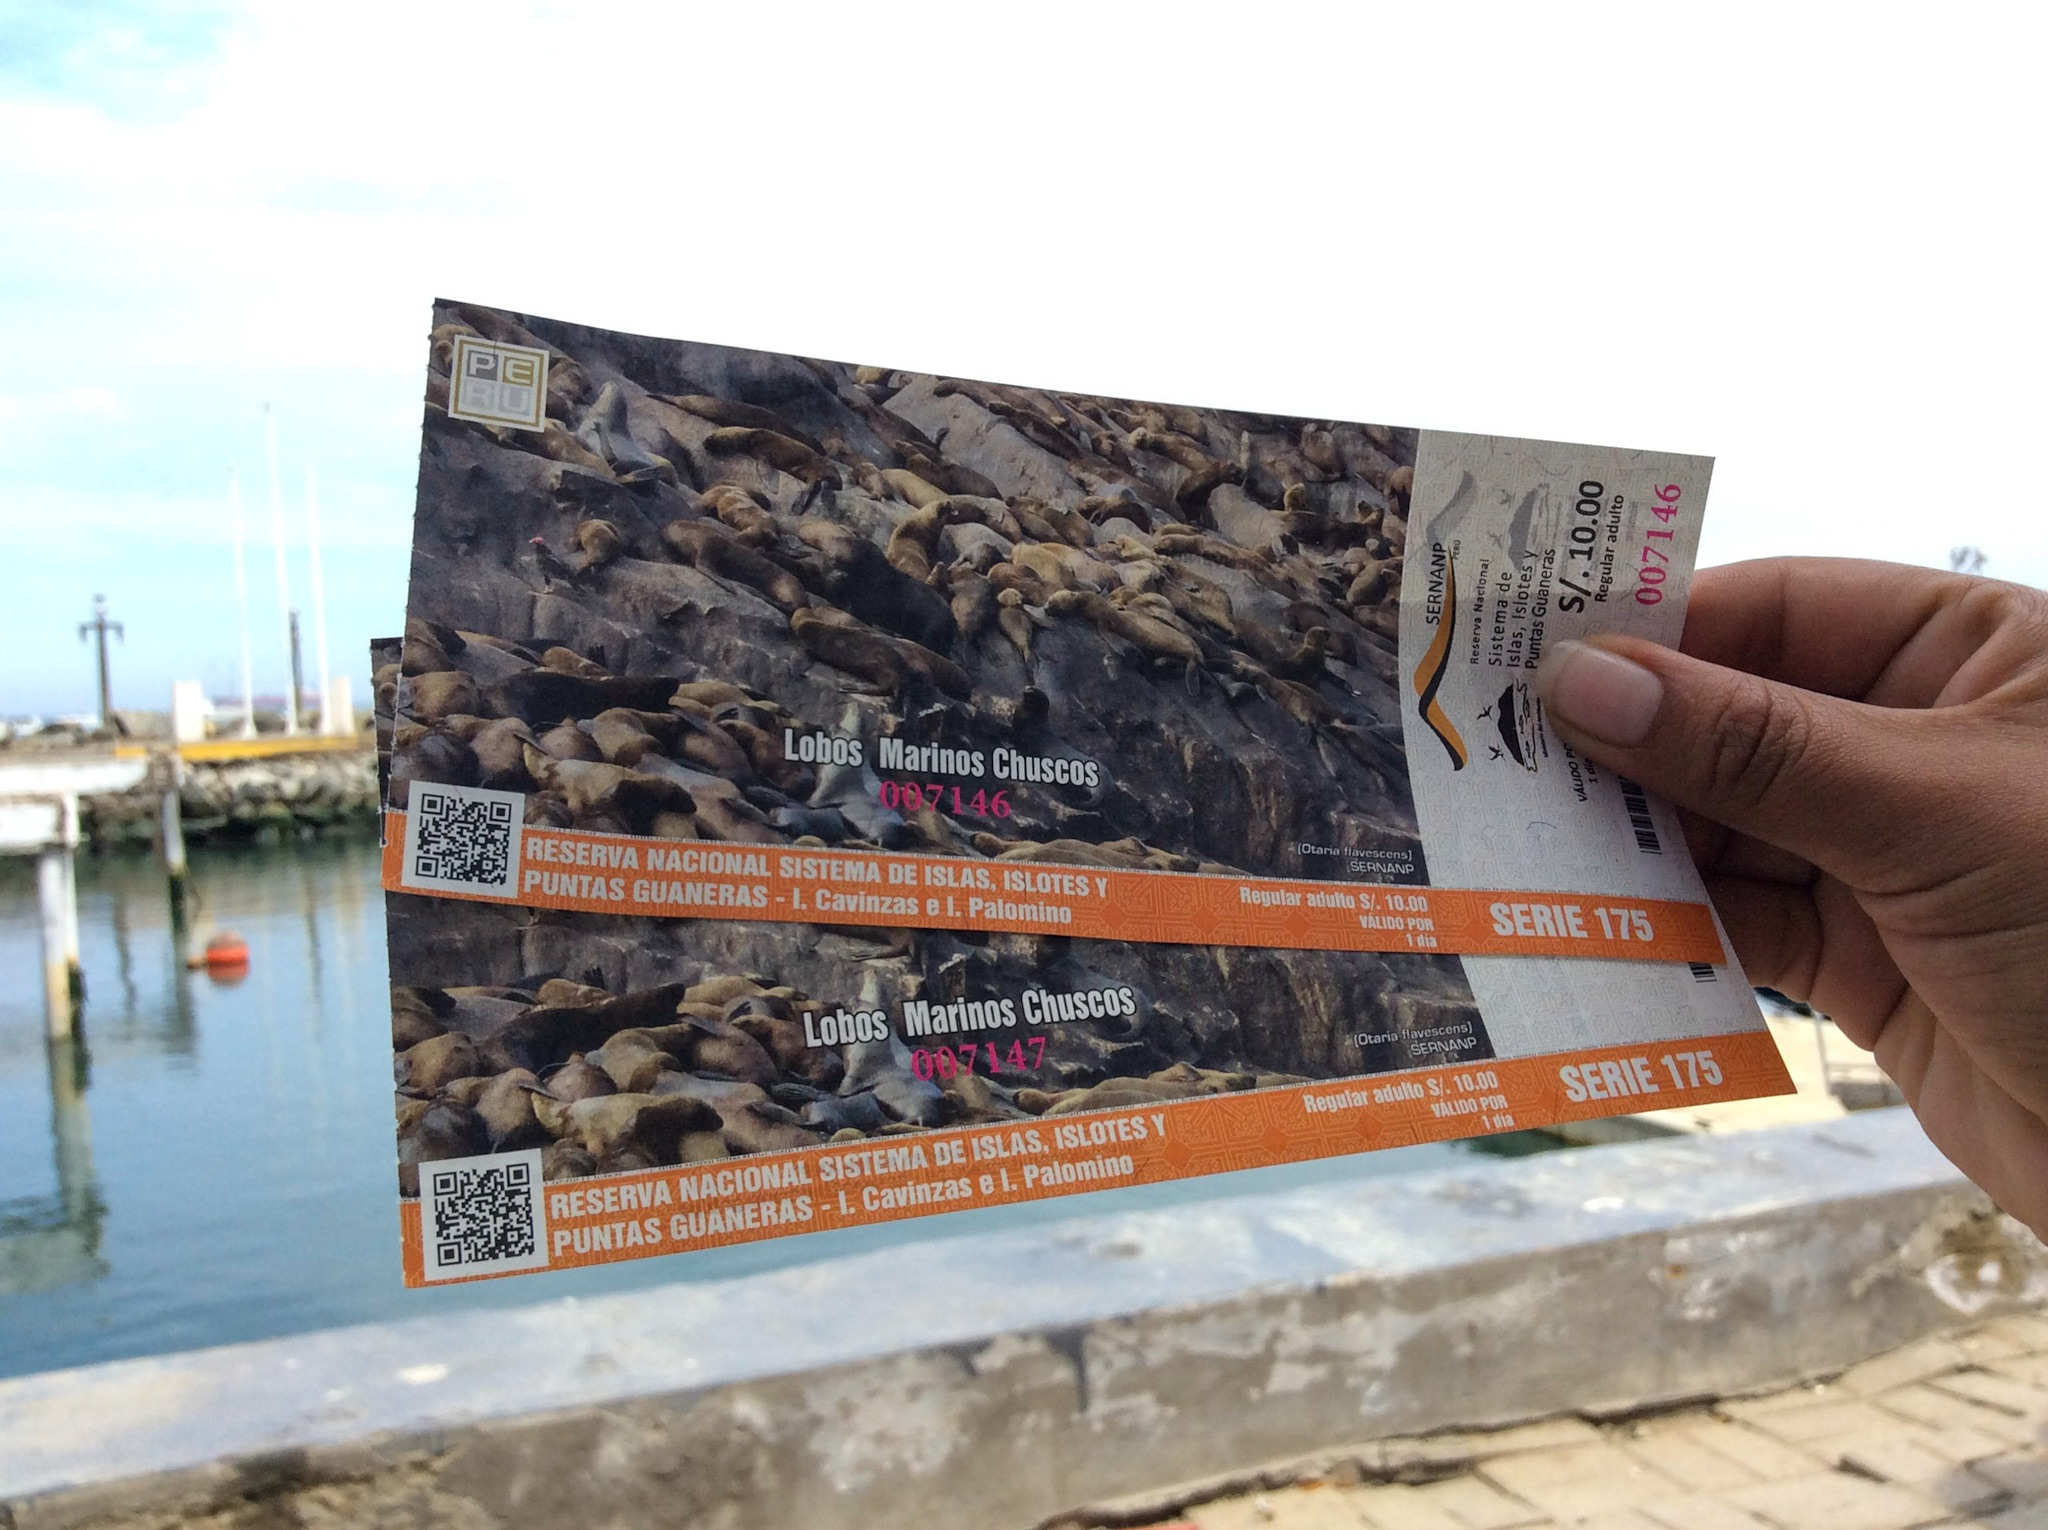 Tickets for the Excurcion (Walter Coraza Morveli)